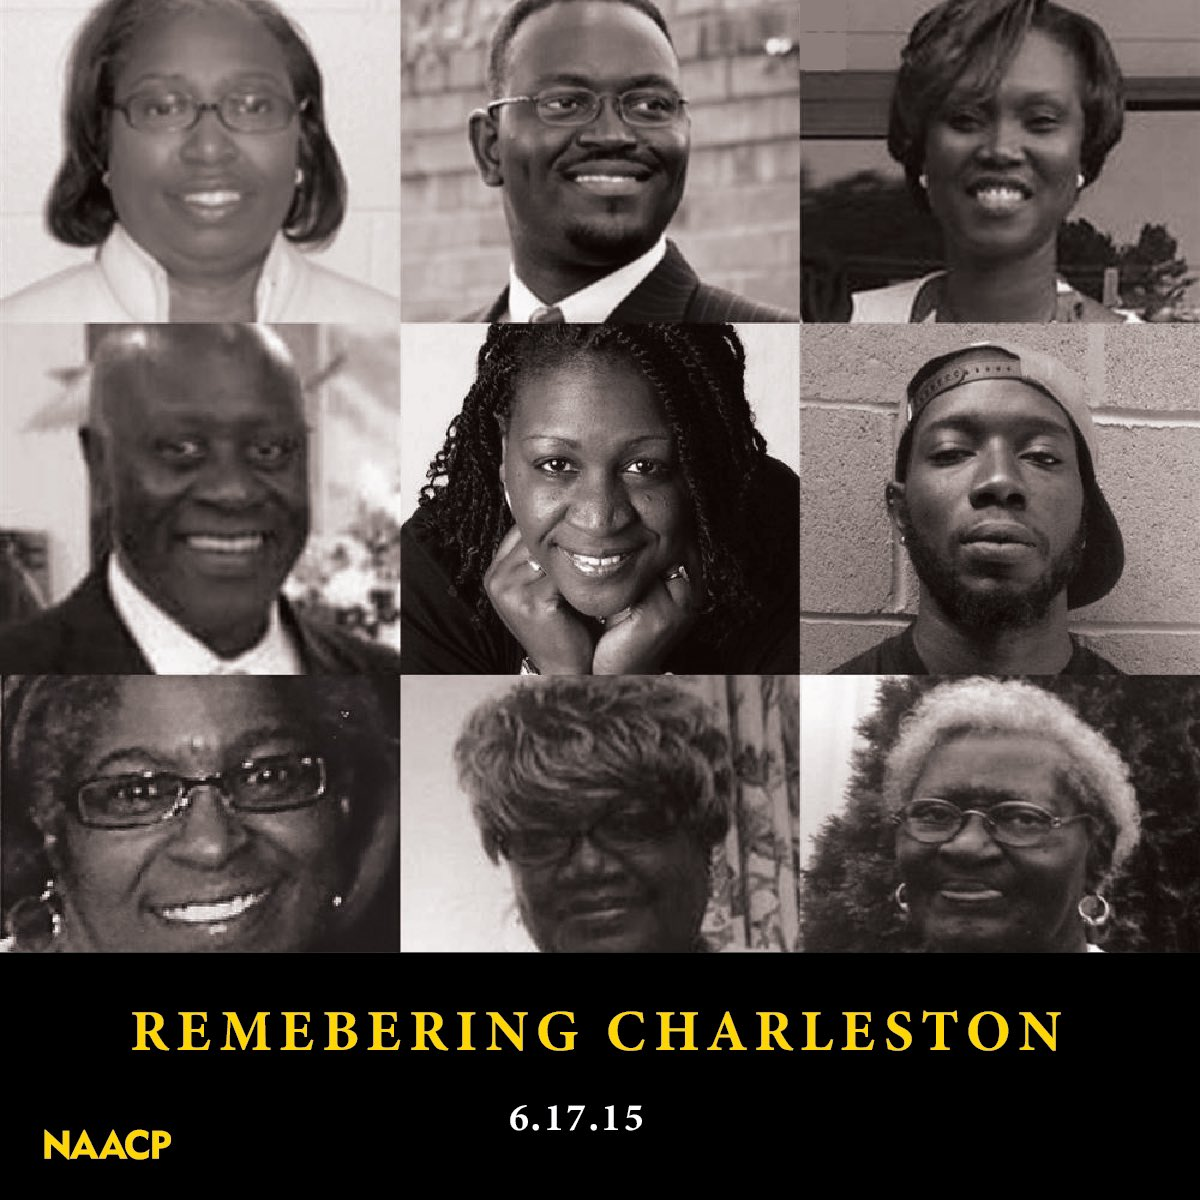 Today we remember the 9 people senselessly gunned down in Charleston and we honor them by continuing in the fight for justice, equality and the equitable treatment for African Americans. https://t.co/CUQ5sRxJQ1